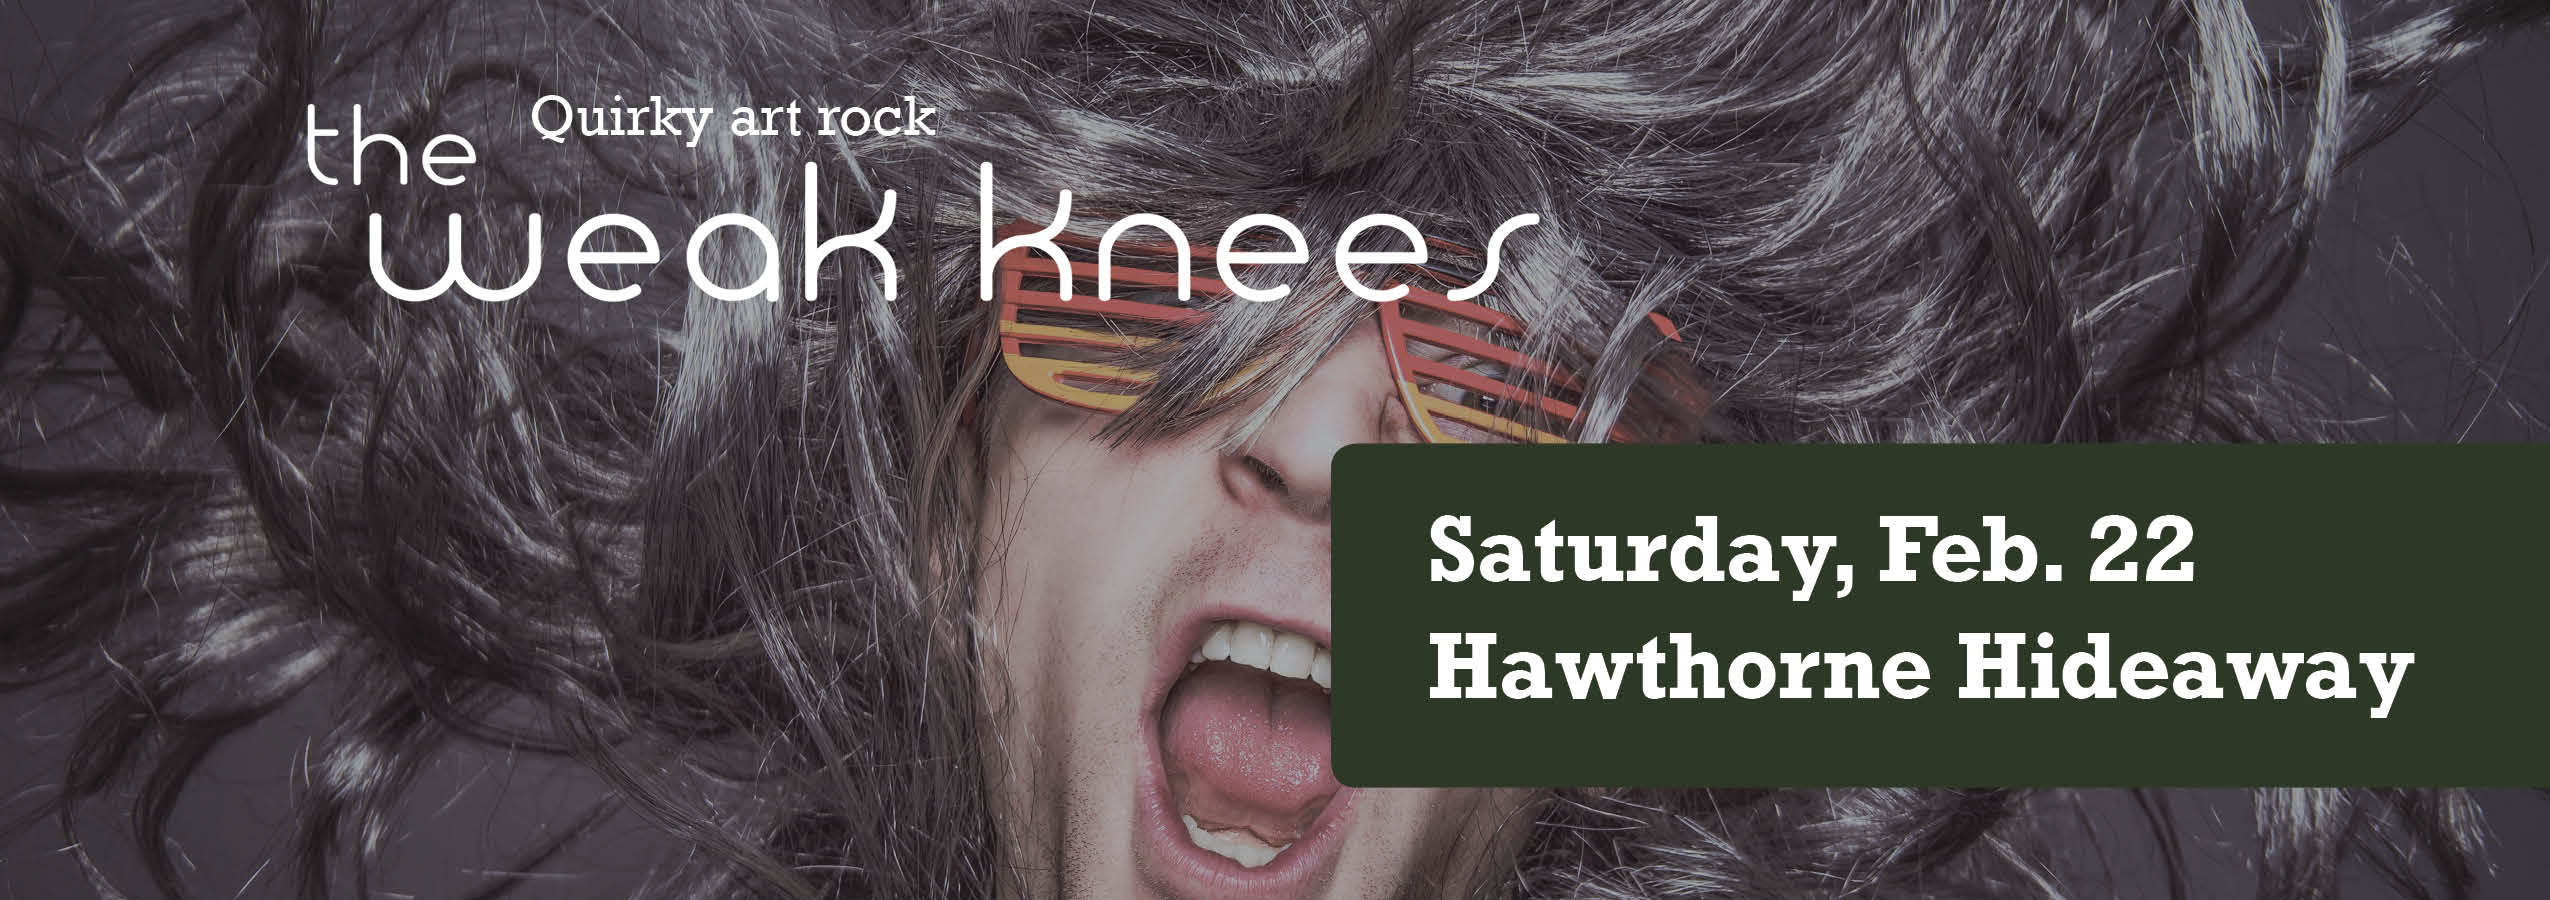 Weak Knees show facebook Feb 22 20200